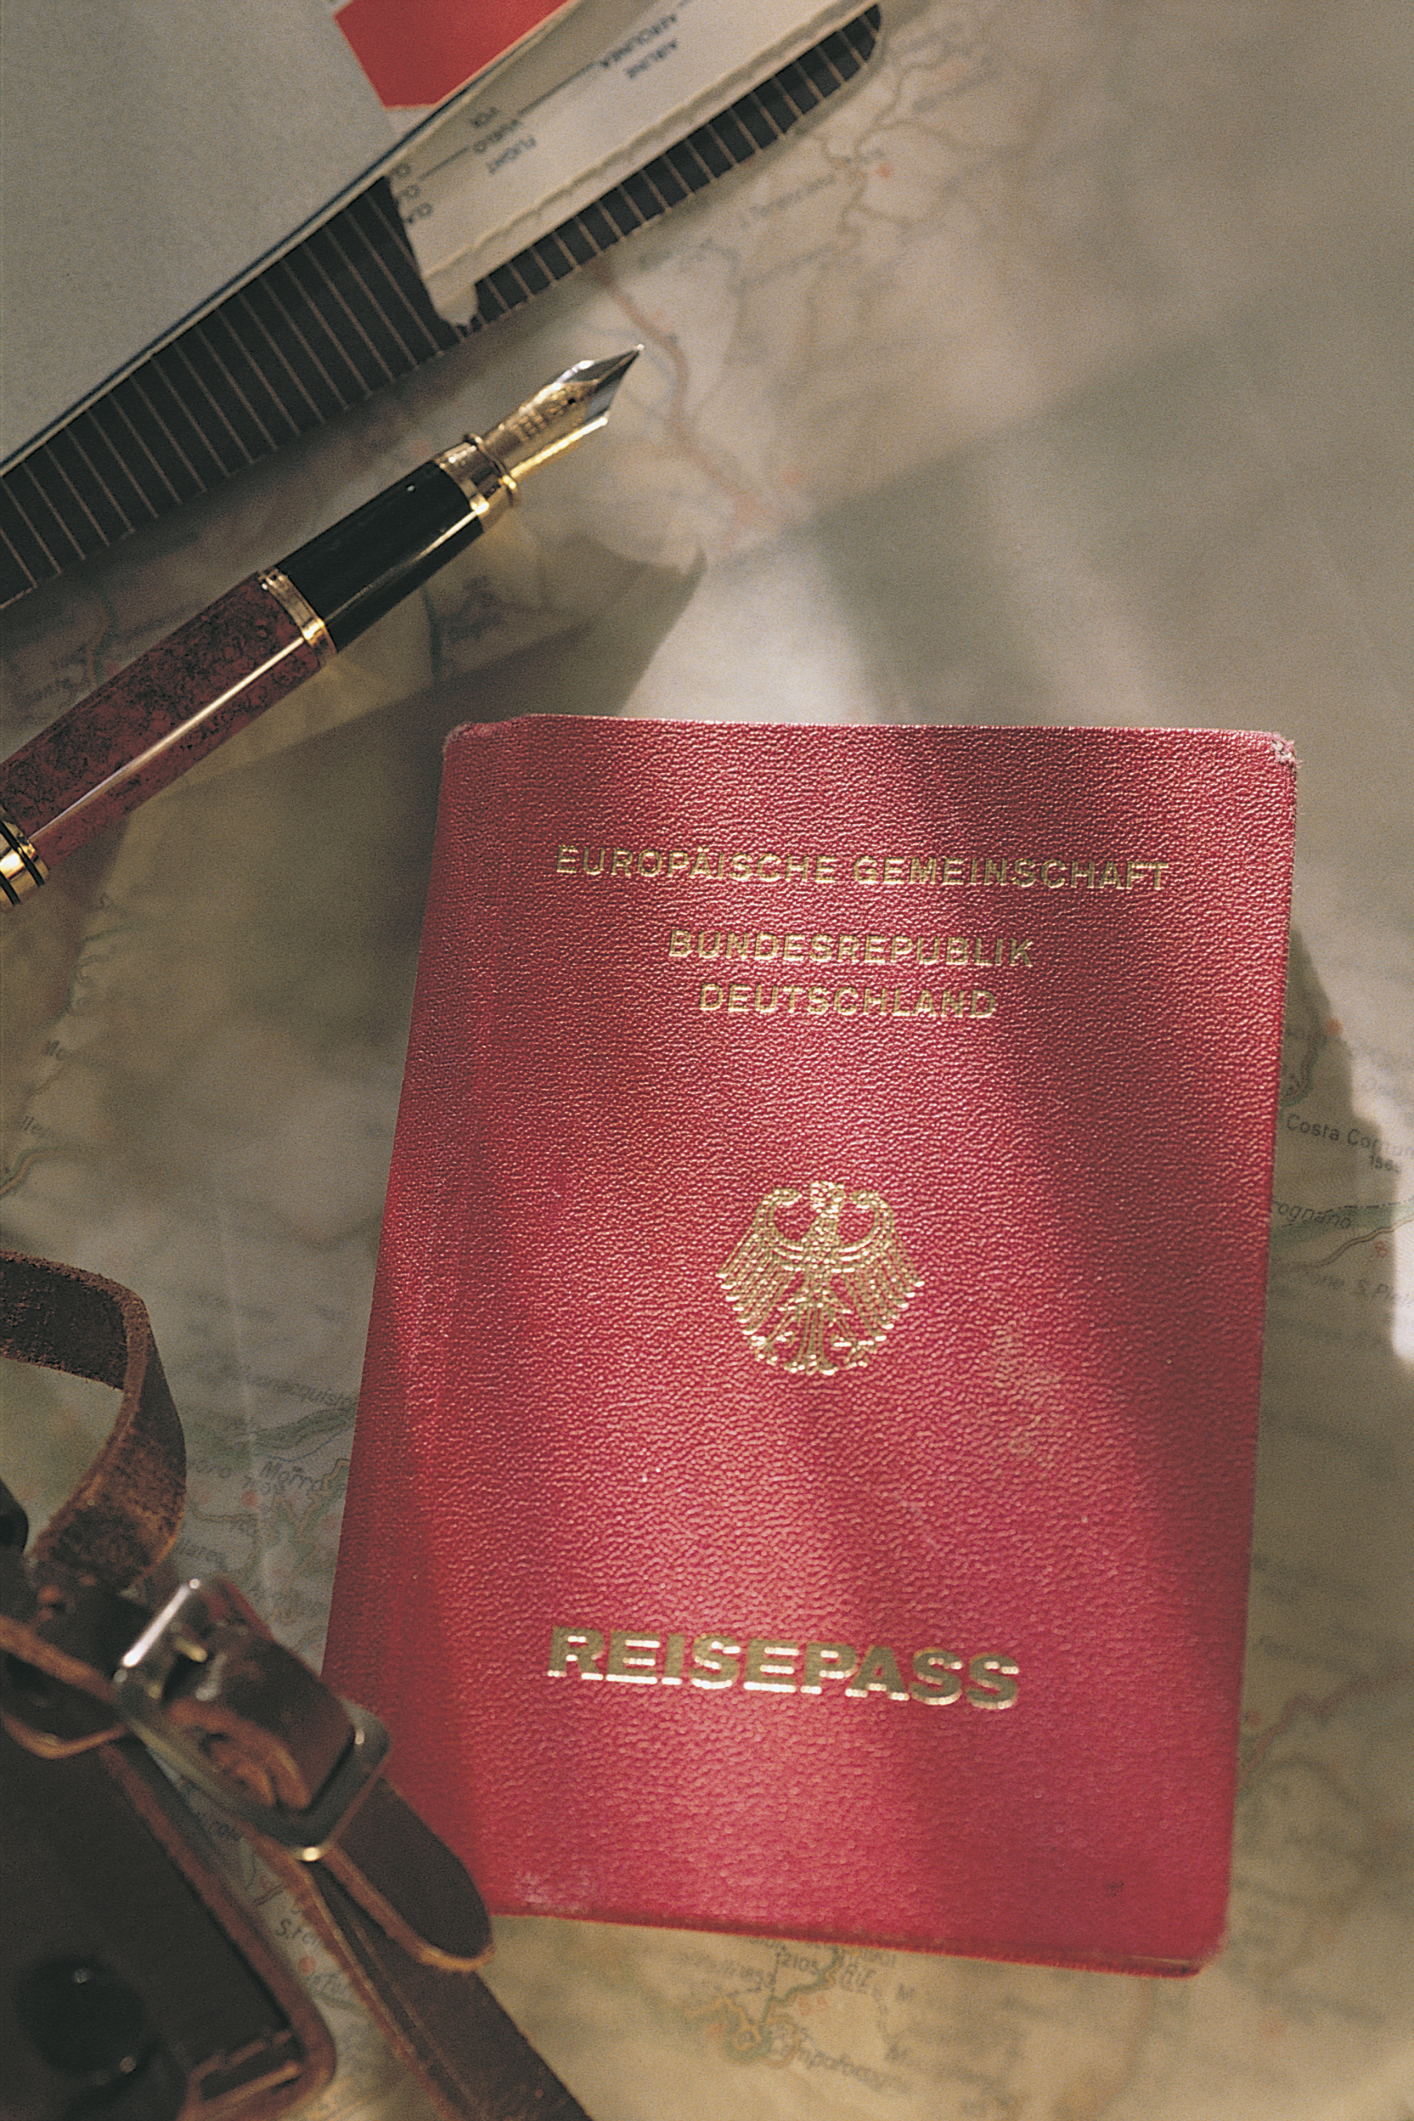 How to Renew My German Passport in the USA | USA Today